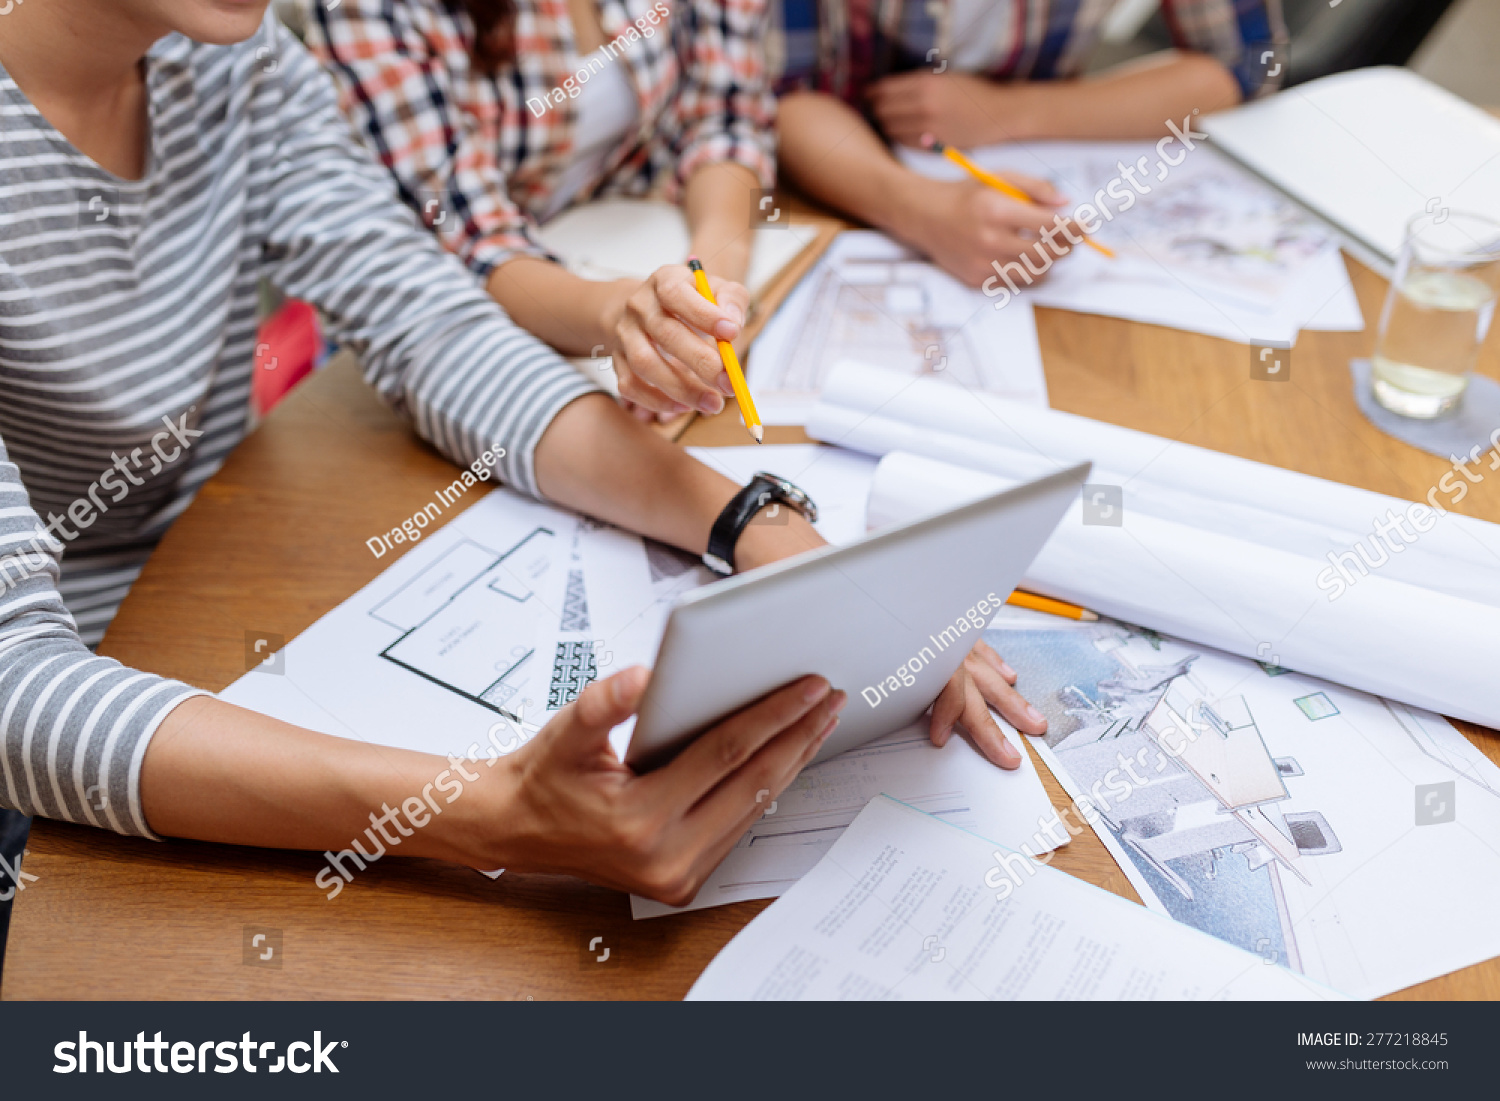 Interior designers using digital tablet meeting stock photo 277218845 shutterstock for Best tablet for interior designers